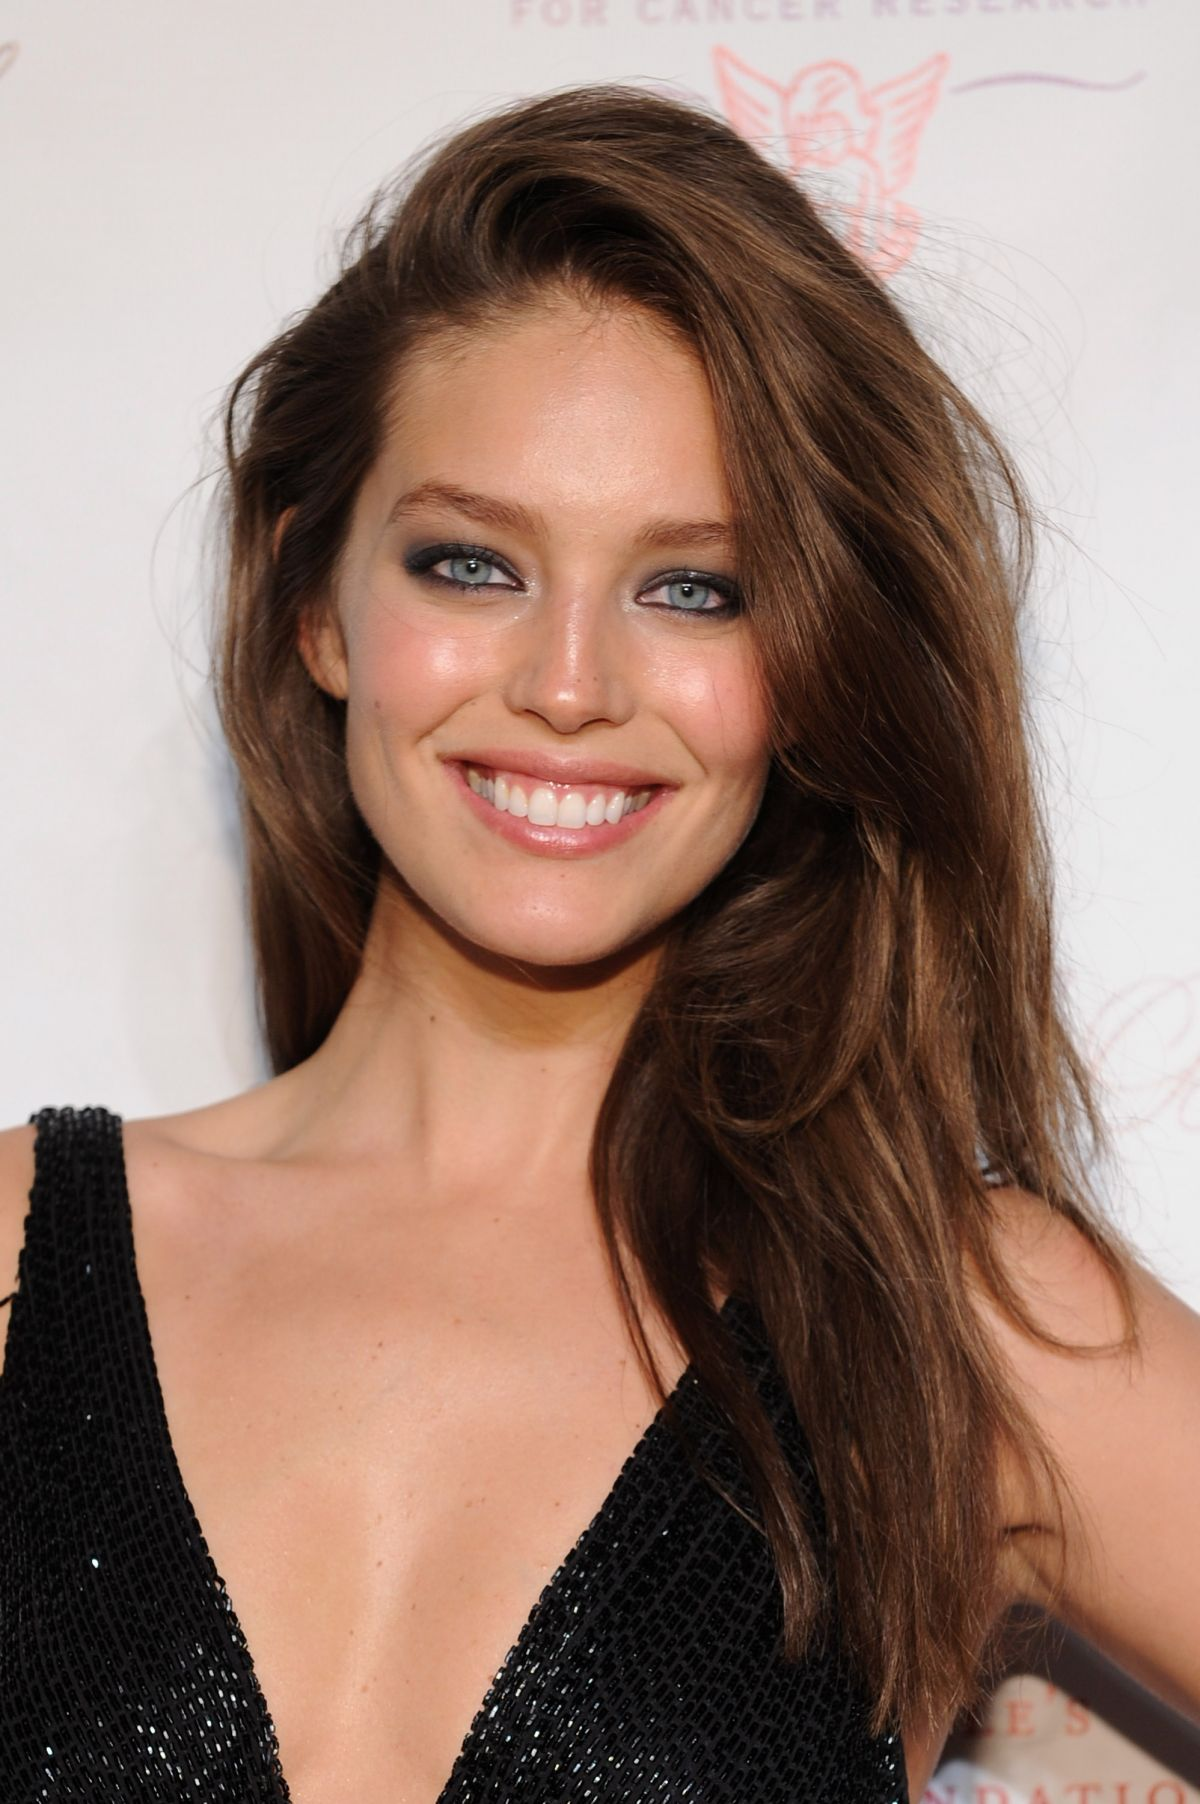 Emily DiDonato nudes (34 foto and video), Pussy, Is a cute, Instagram, butt 2006